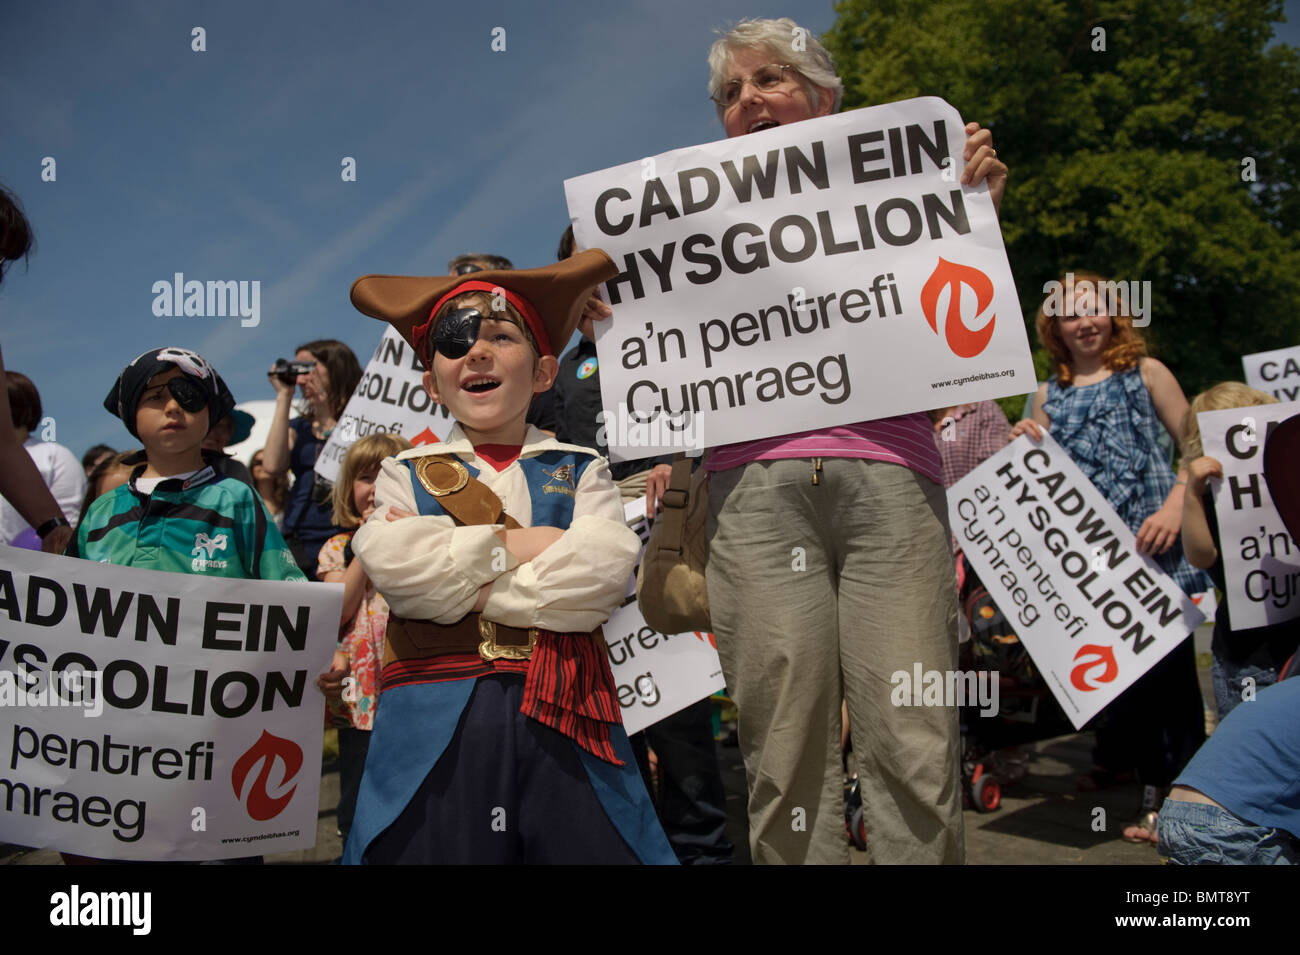 A protest by members of the Welsh Language Society against closure of small rural schools, at the Urdd Eisteddfod - Stock Image